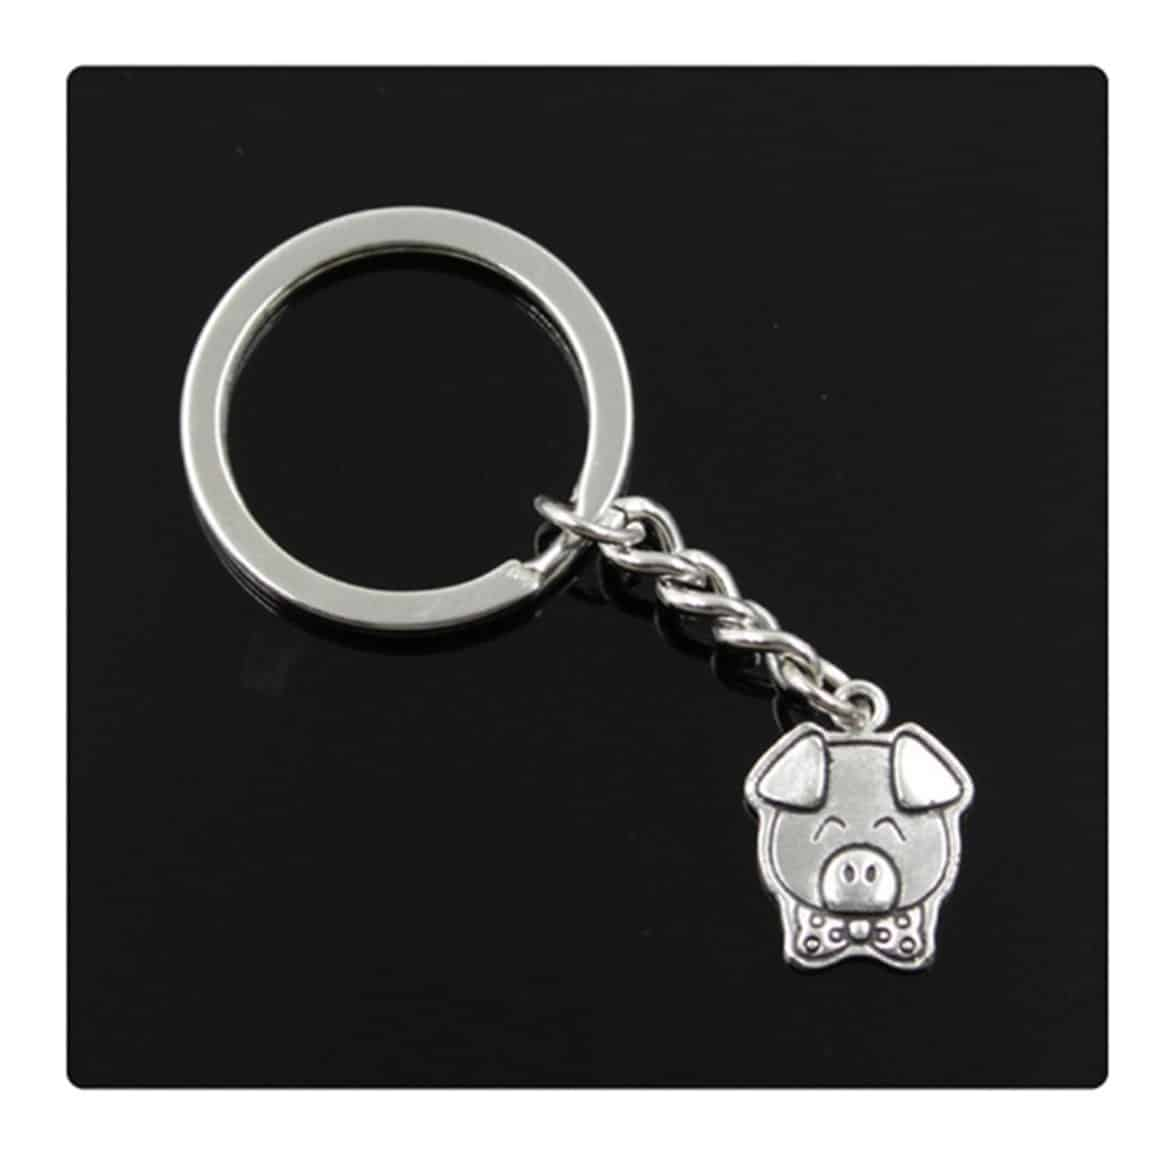 fashion men 30mm keychain DIY metal holder chain vintage pig 2015mm antique silver pendant